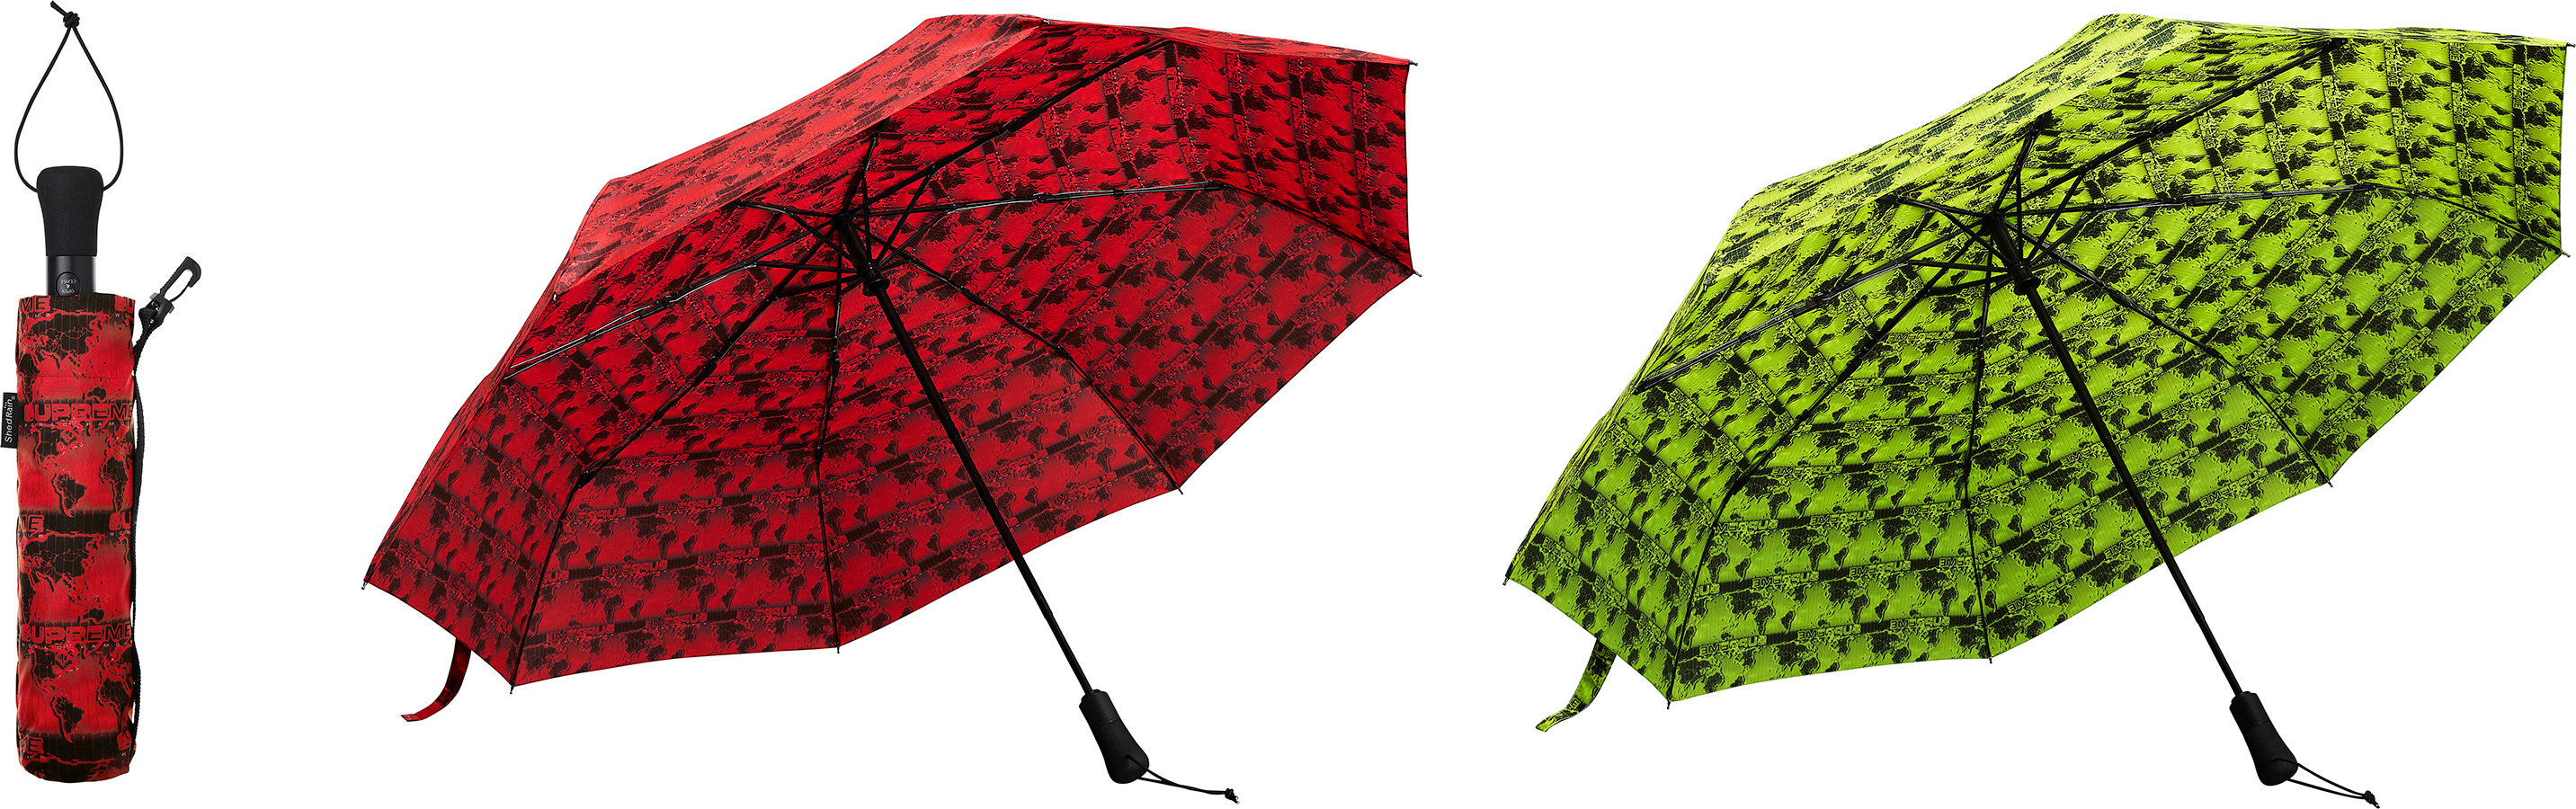 supreme-18ss-spring-summer-supreme-shedrain-world-famous-umbrella